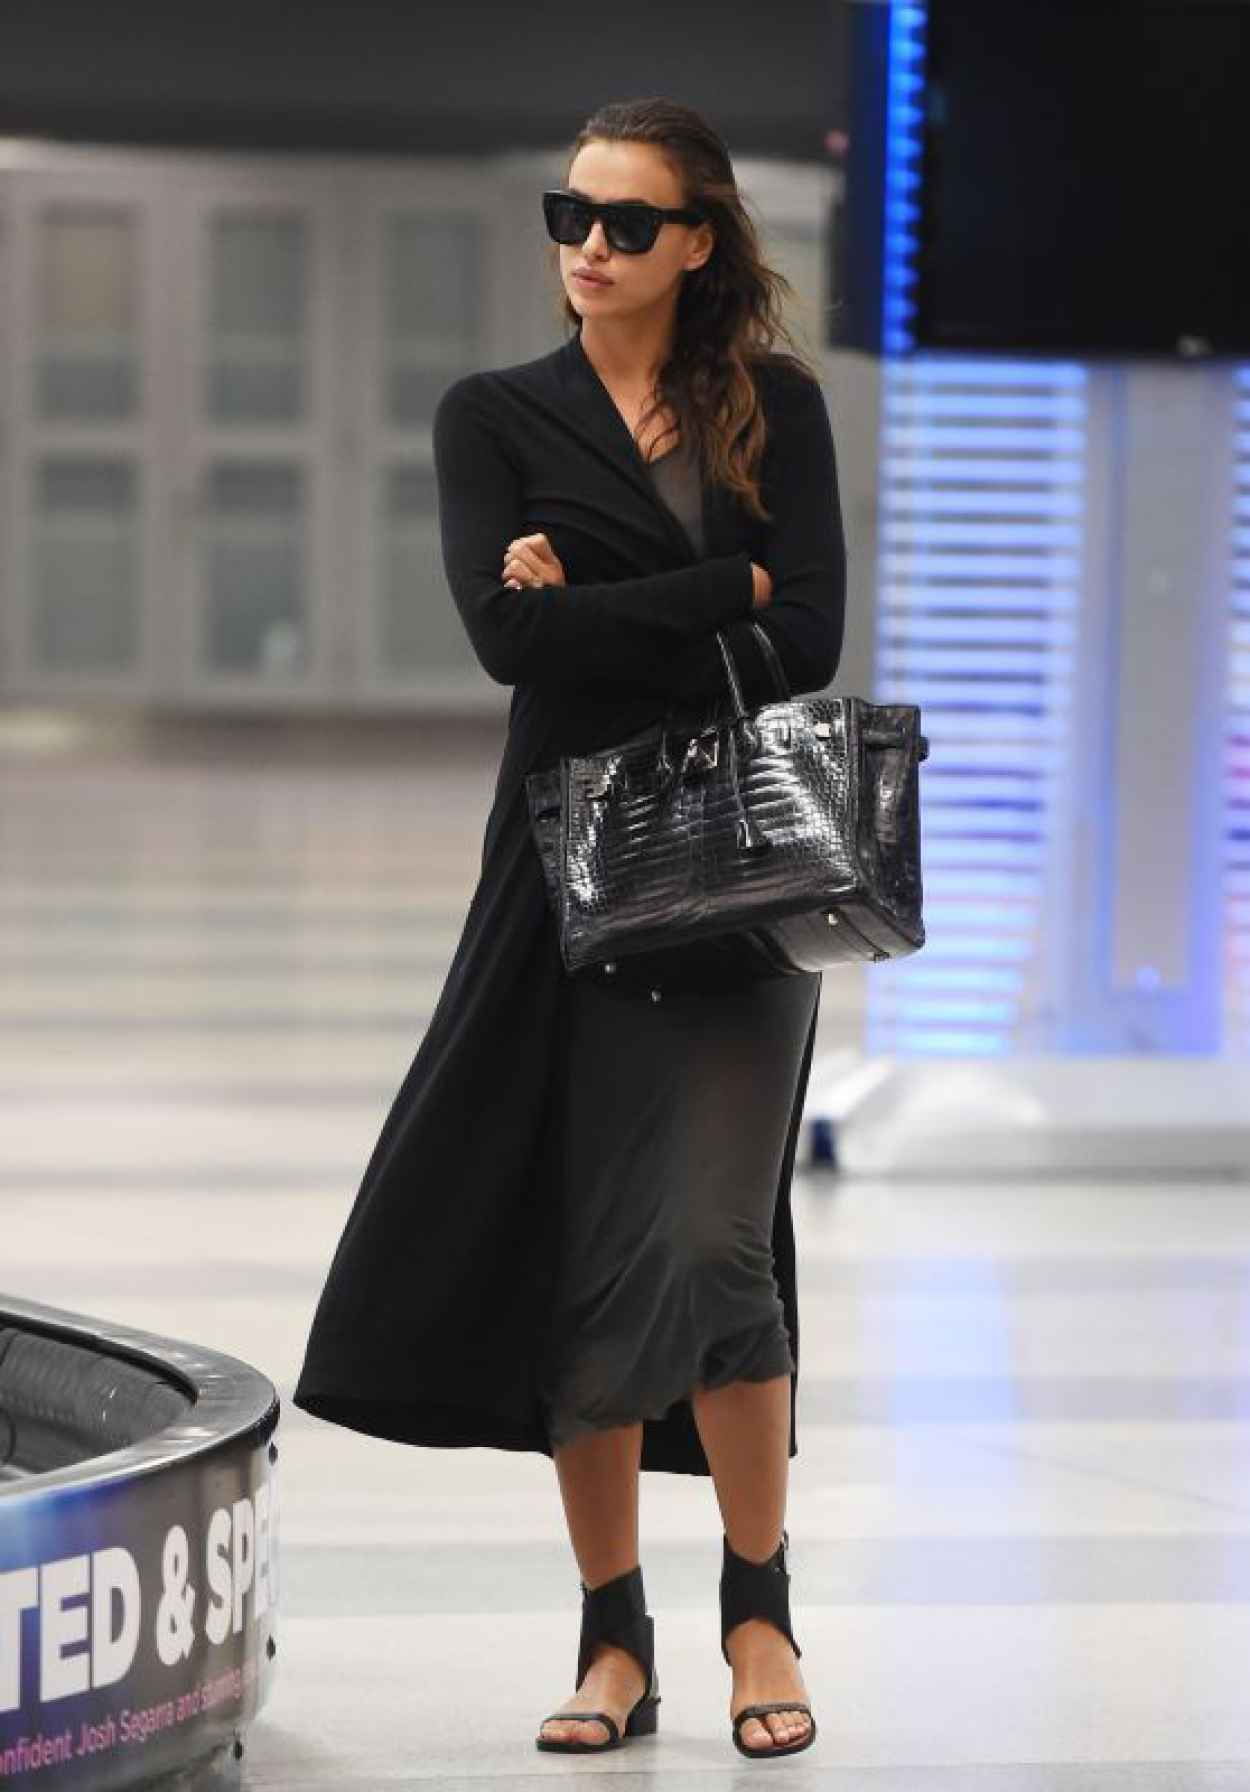 Irina Shayk Airport Style - JFK Airport in NYC, September 2015-1